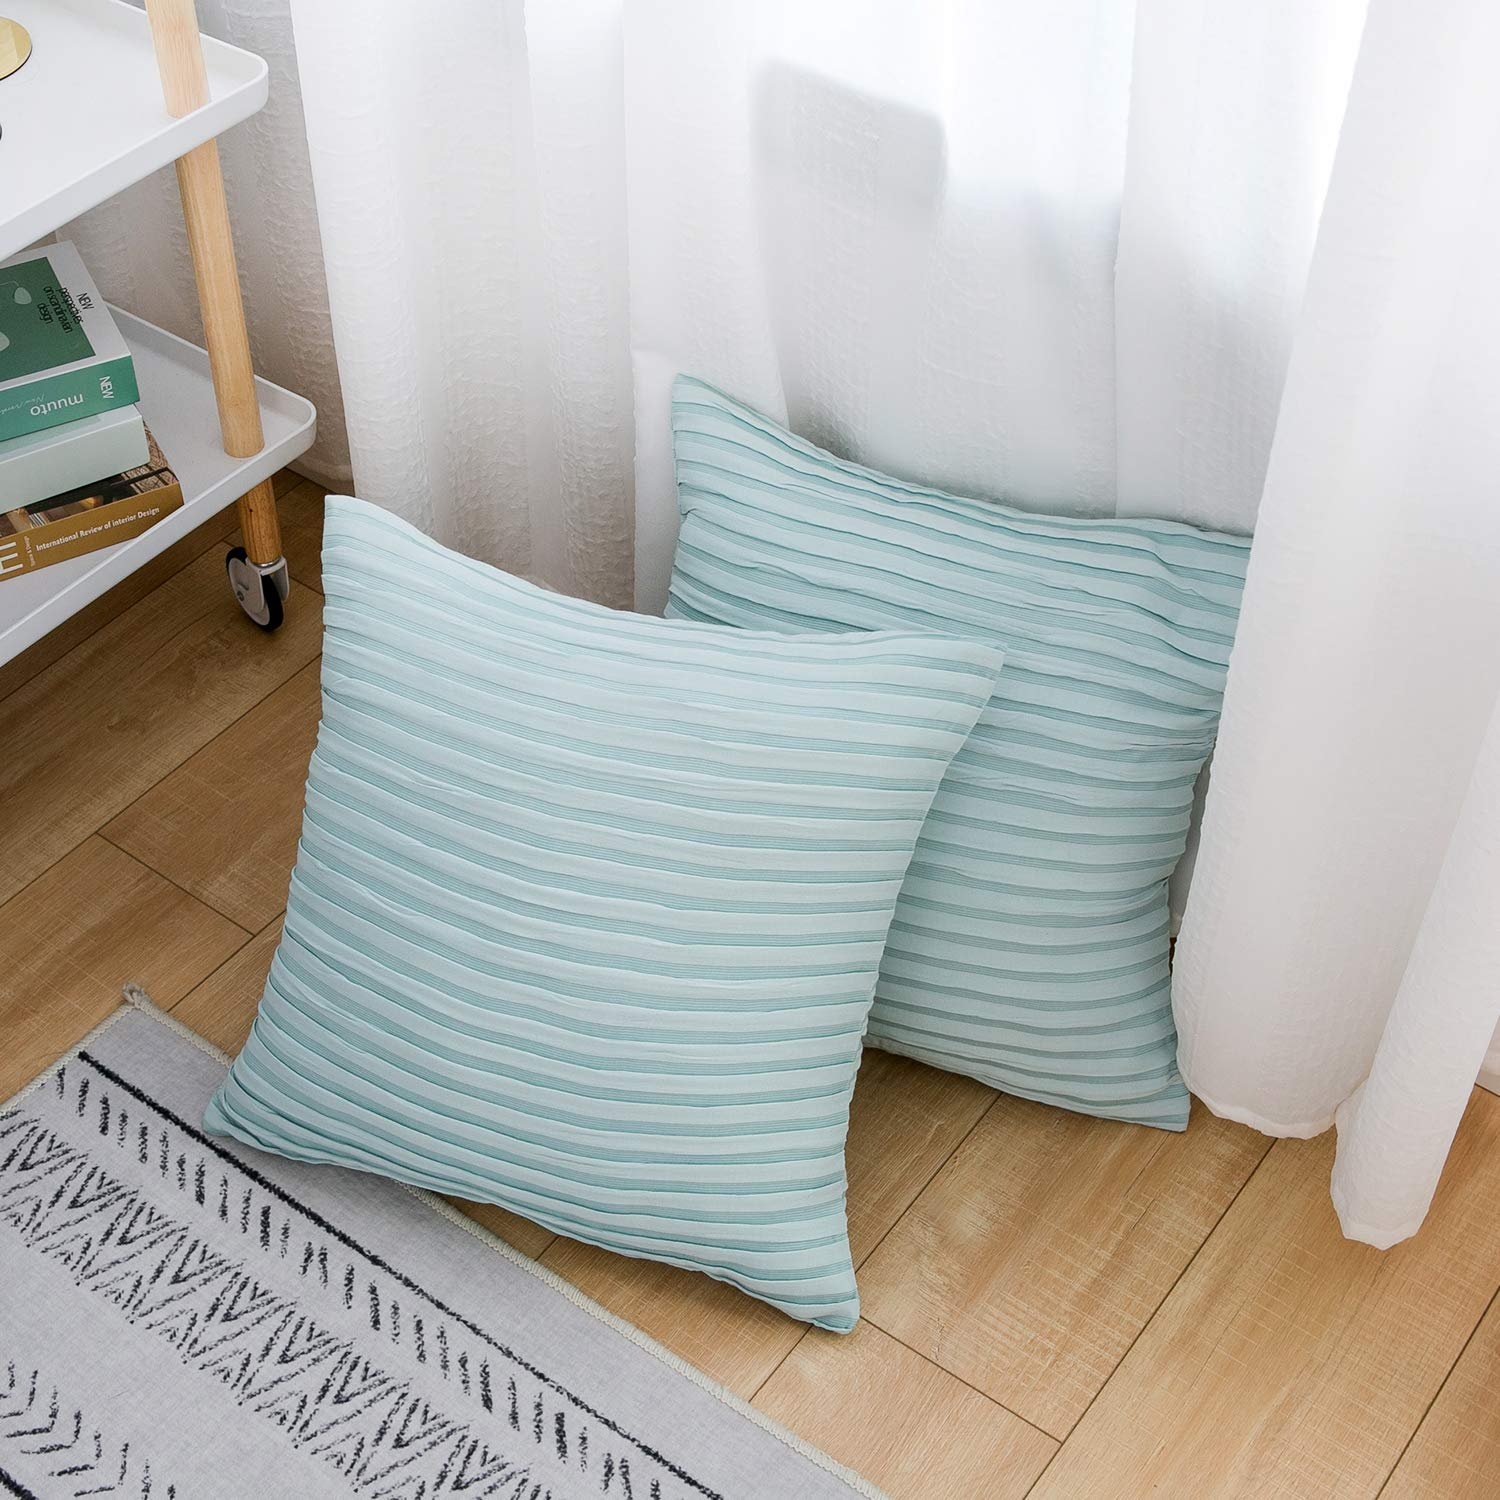 Yeadous Throw Pillow Covers Case 2 Pack Jacquard Striped 100 Cotton Cushion Cover Soft Throw Pillow Case Best Decorative Pillow Shams Covers For Sofa Couch Bed Home Decor Light Teal 18 X18